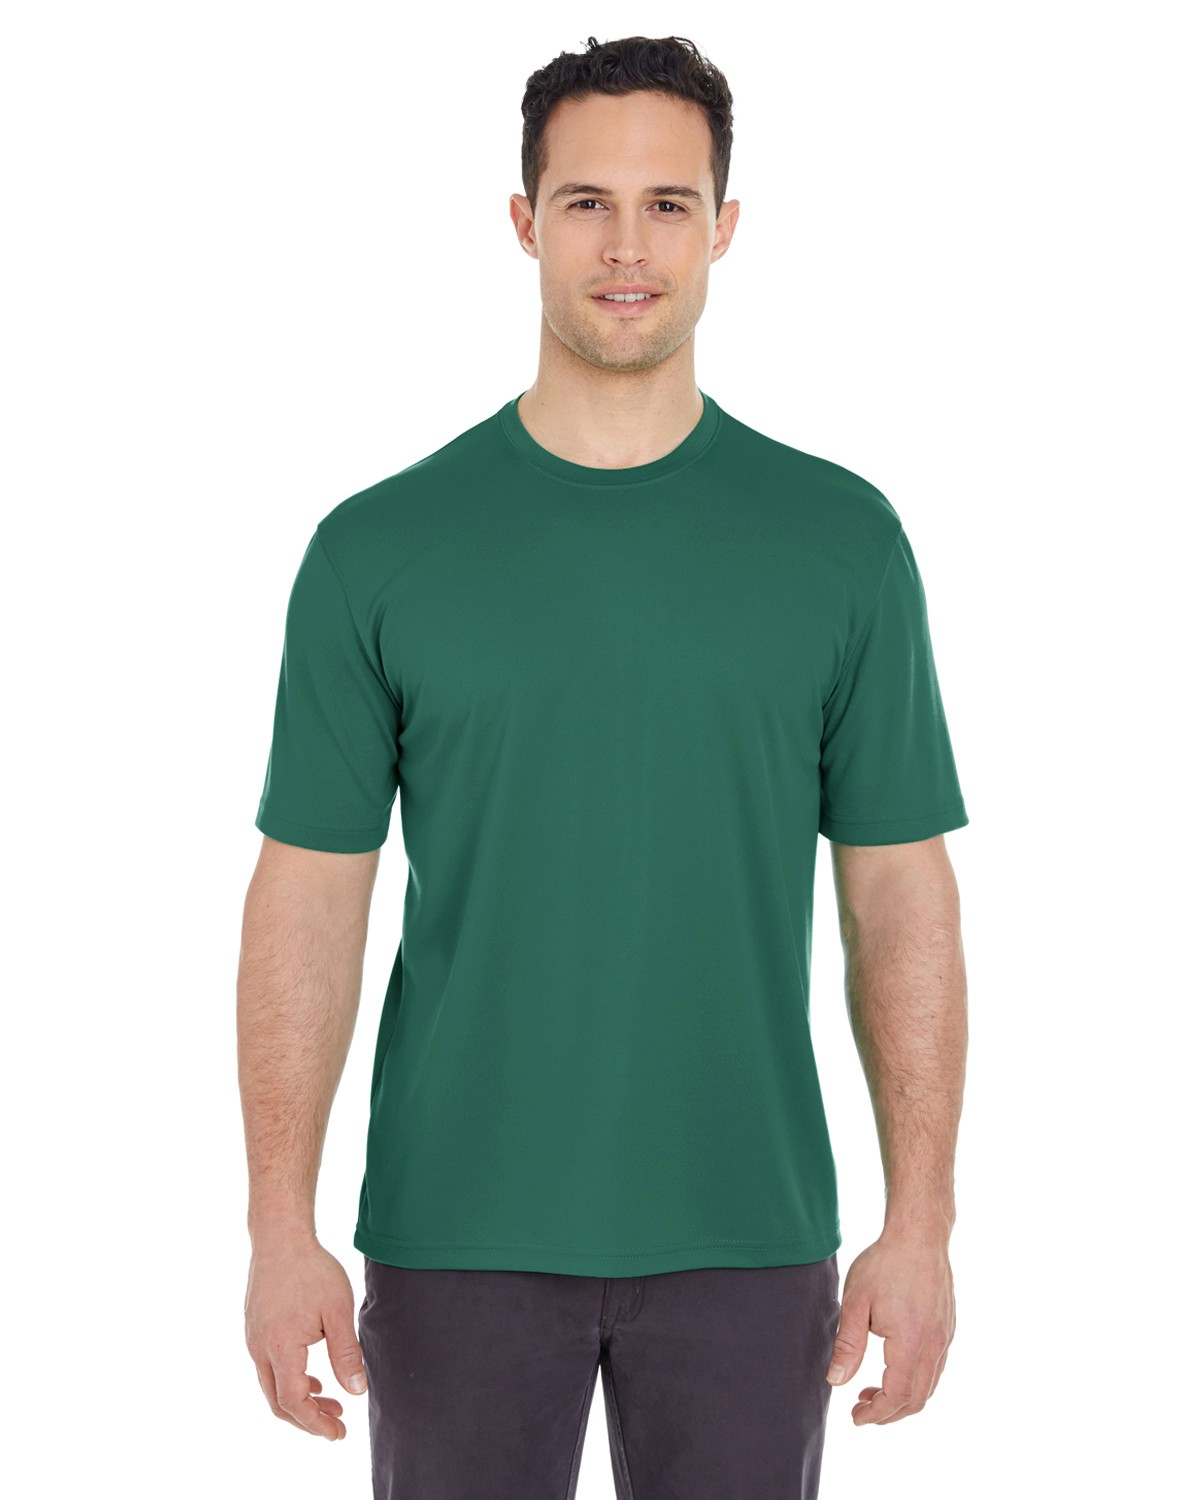 8400 UltraClub FOREST GREEN